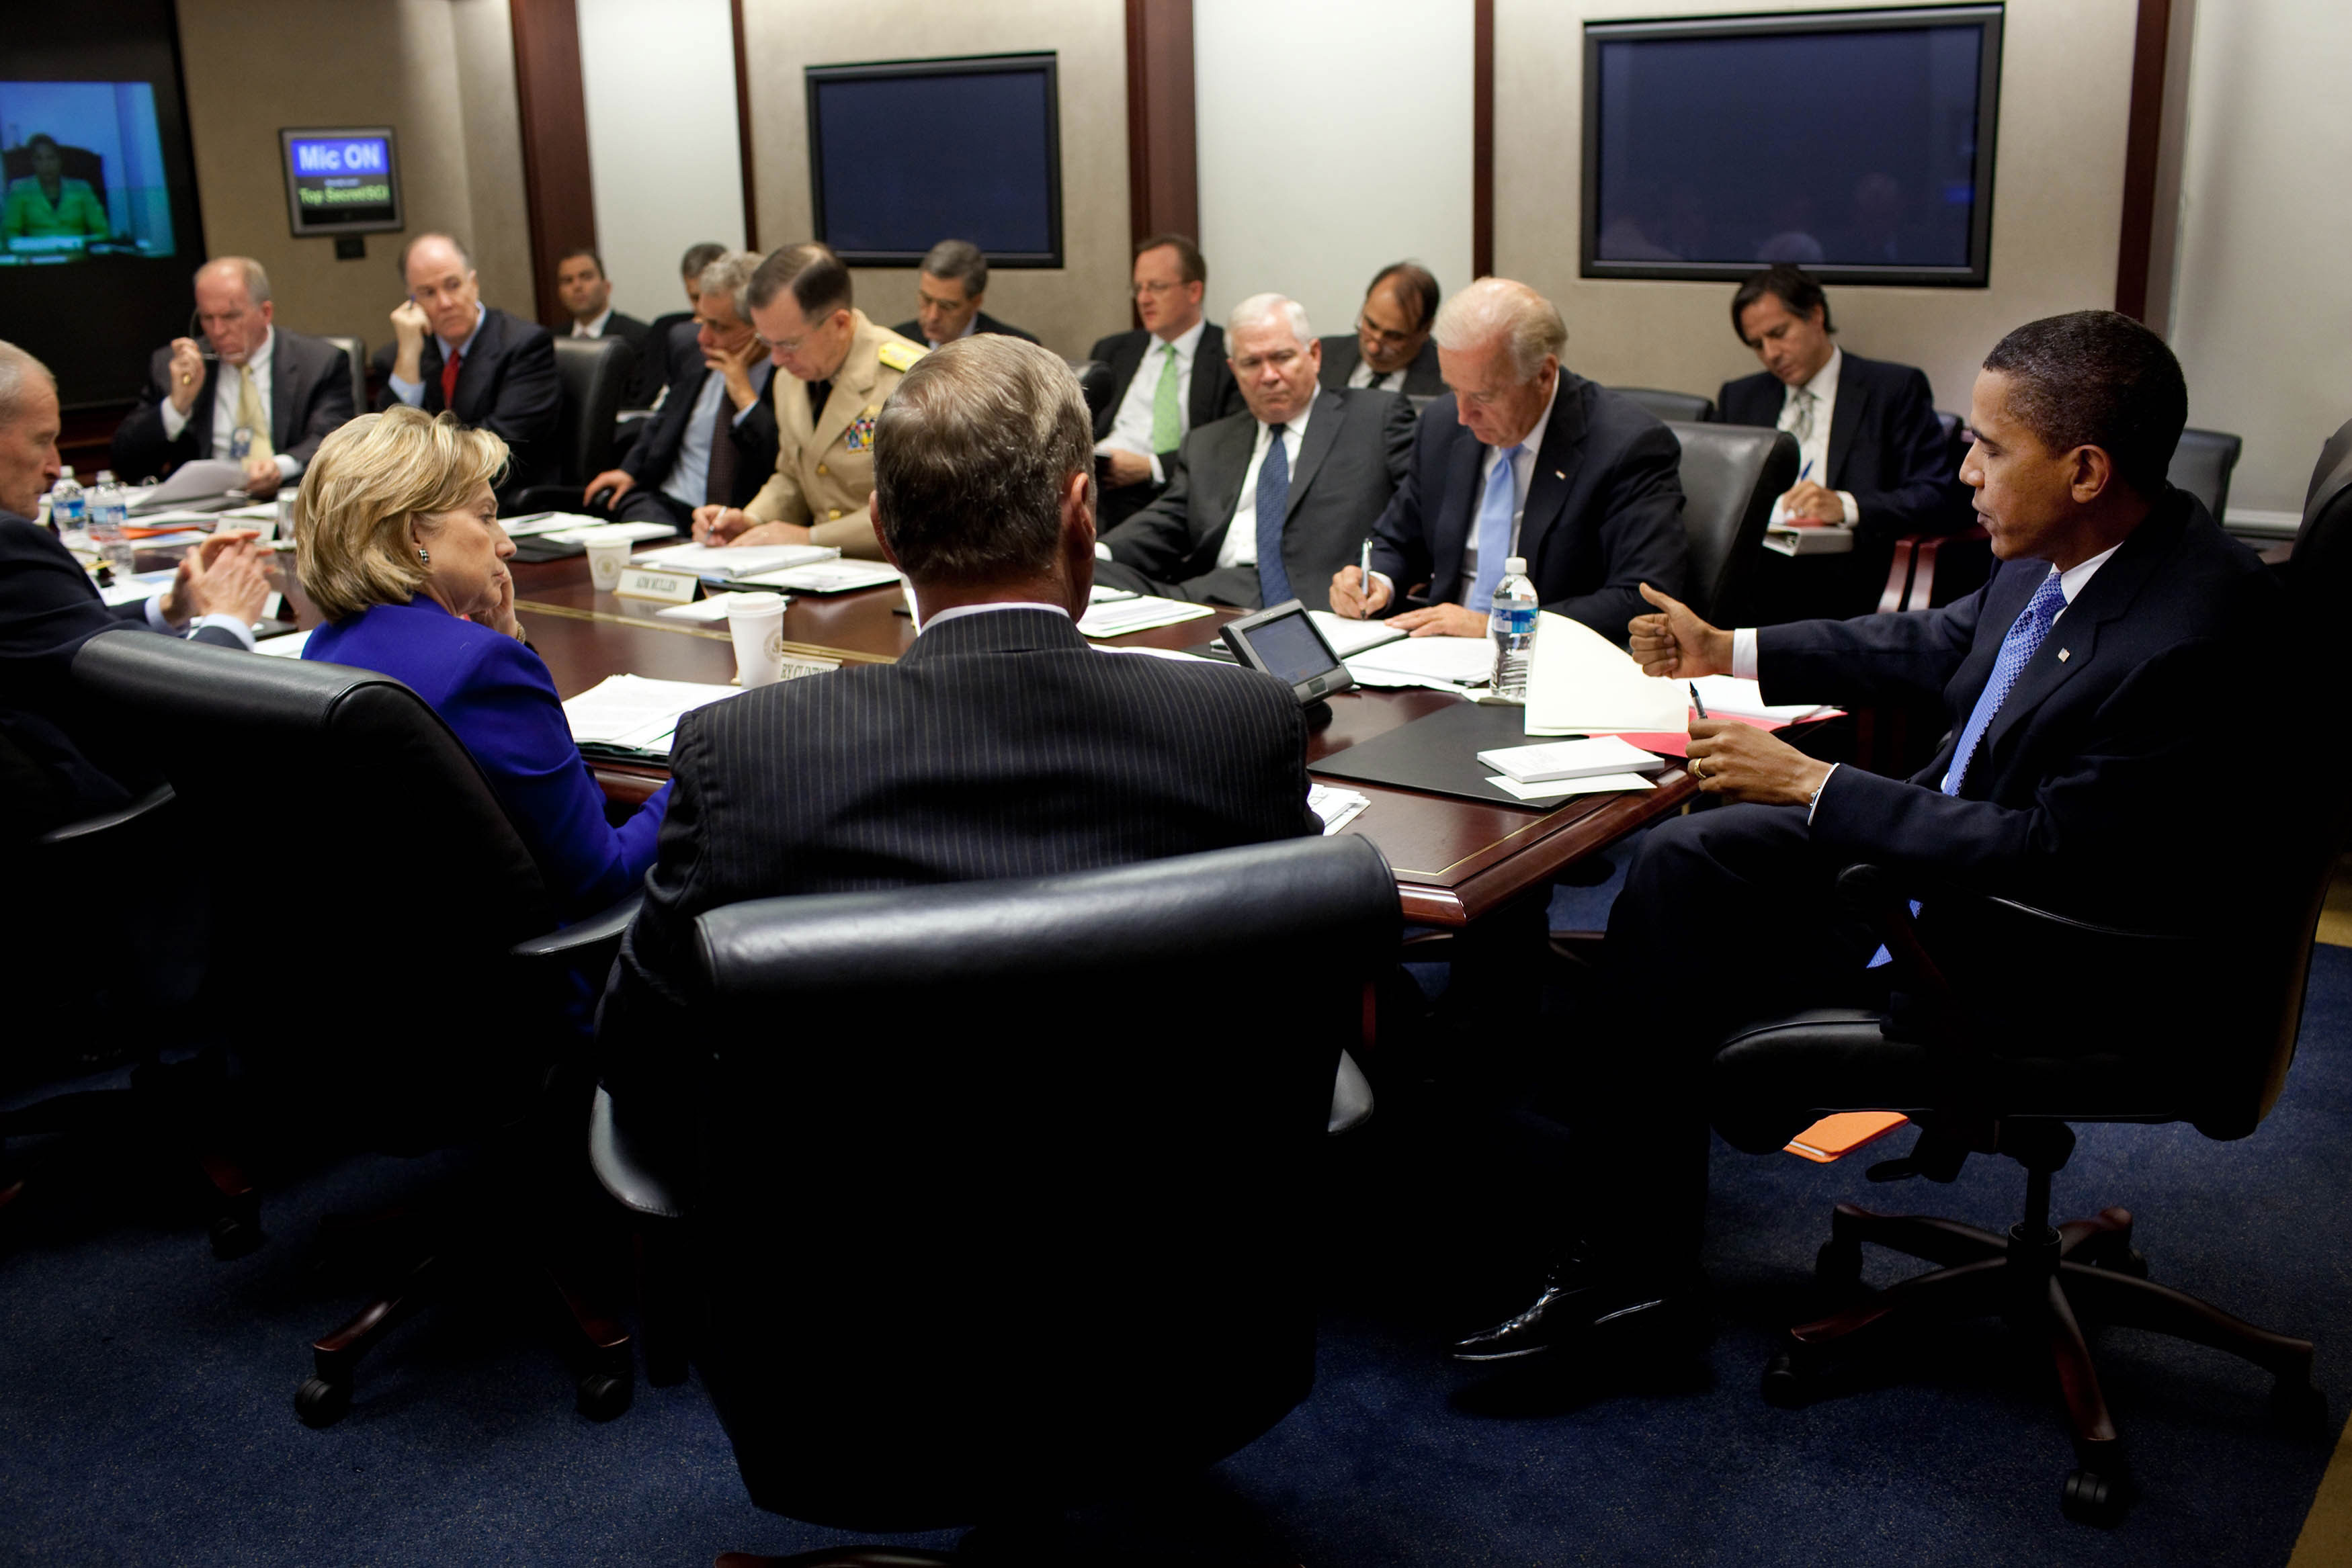 Situation Room White House Events